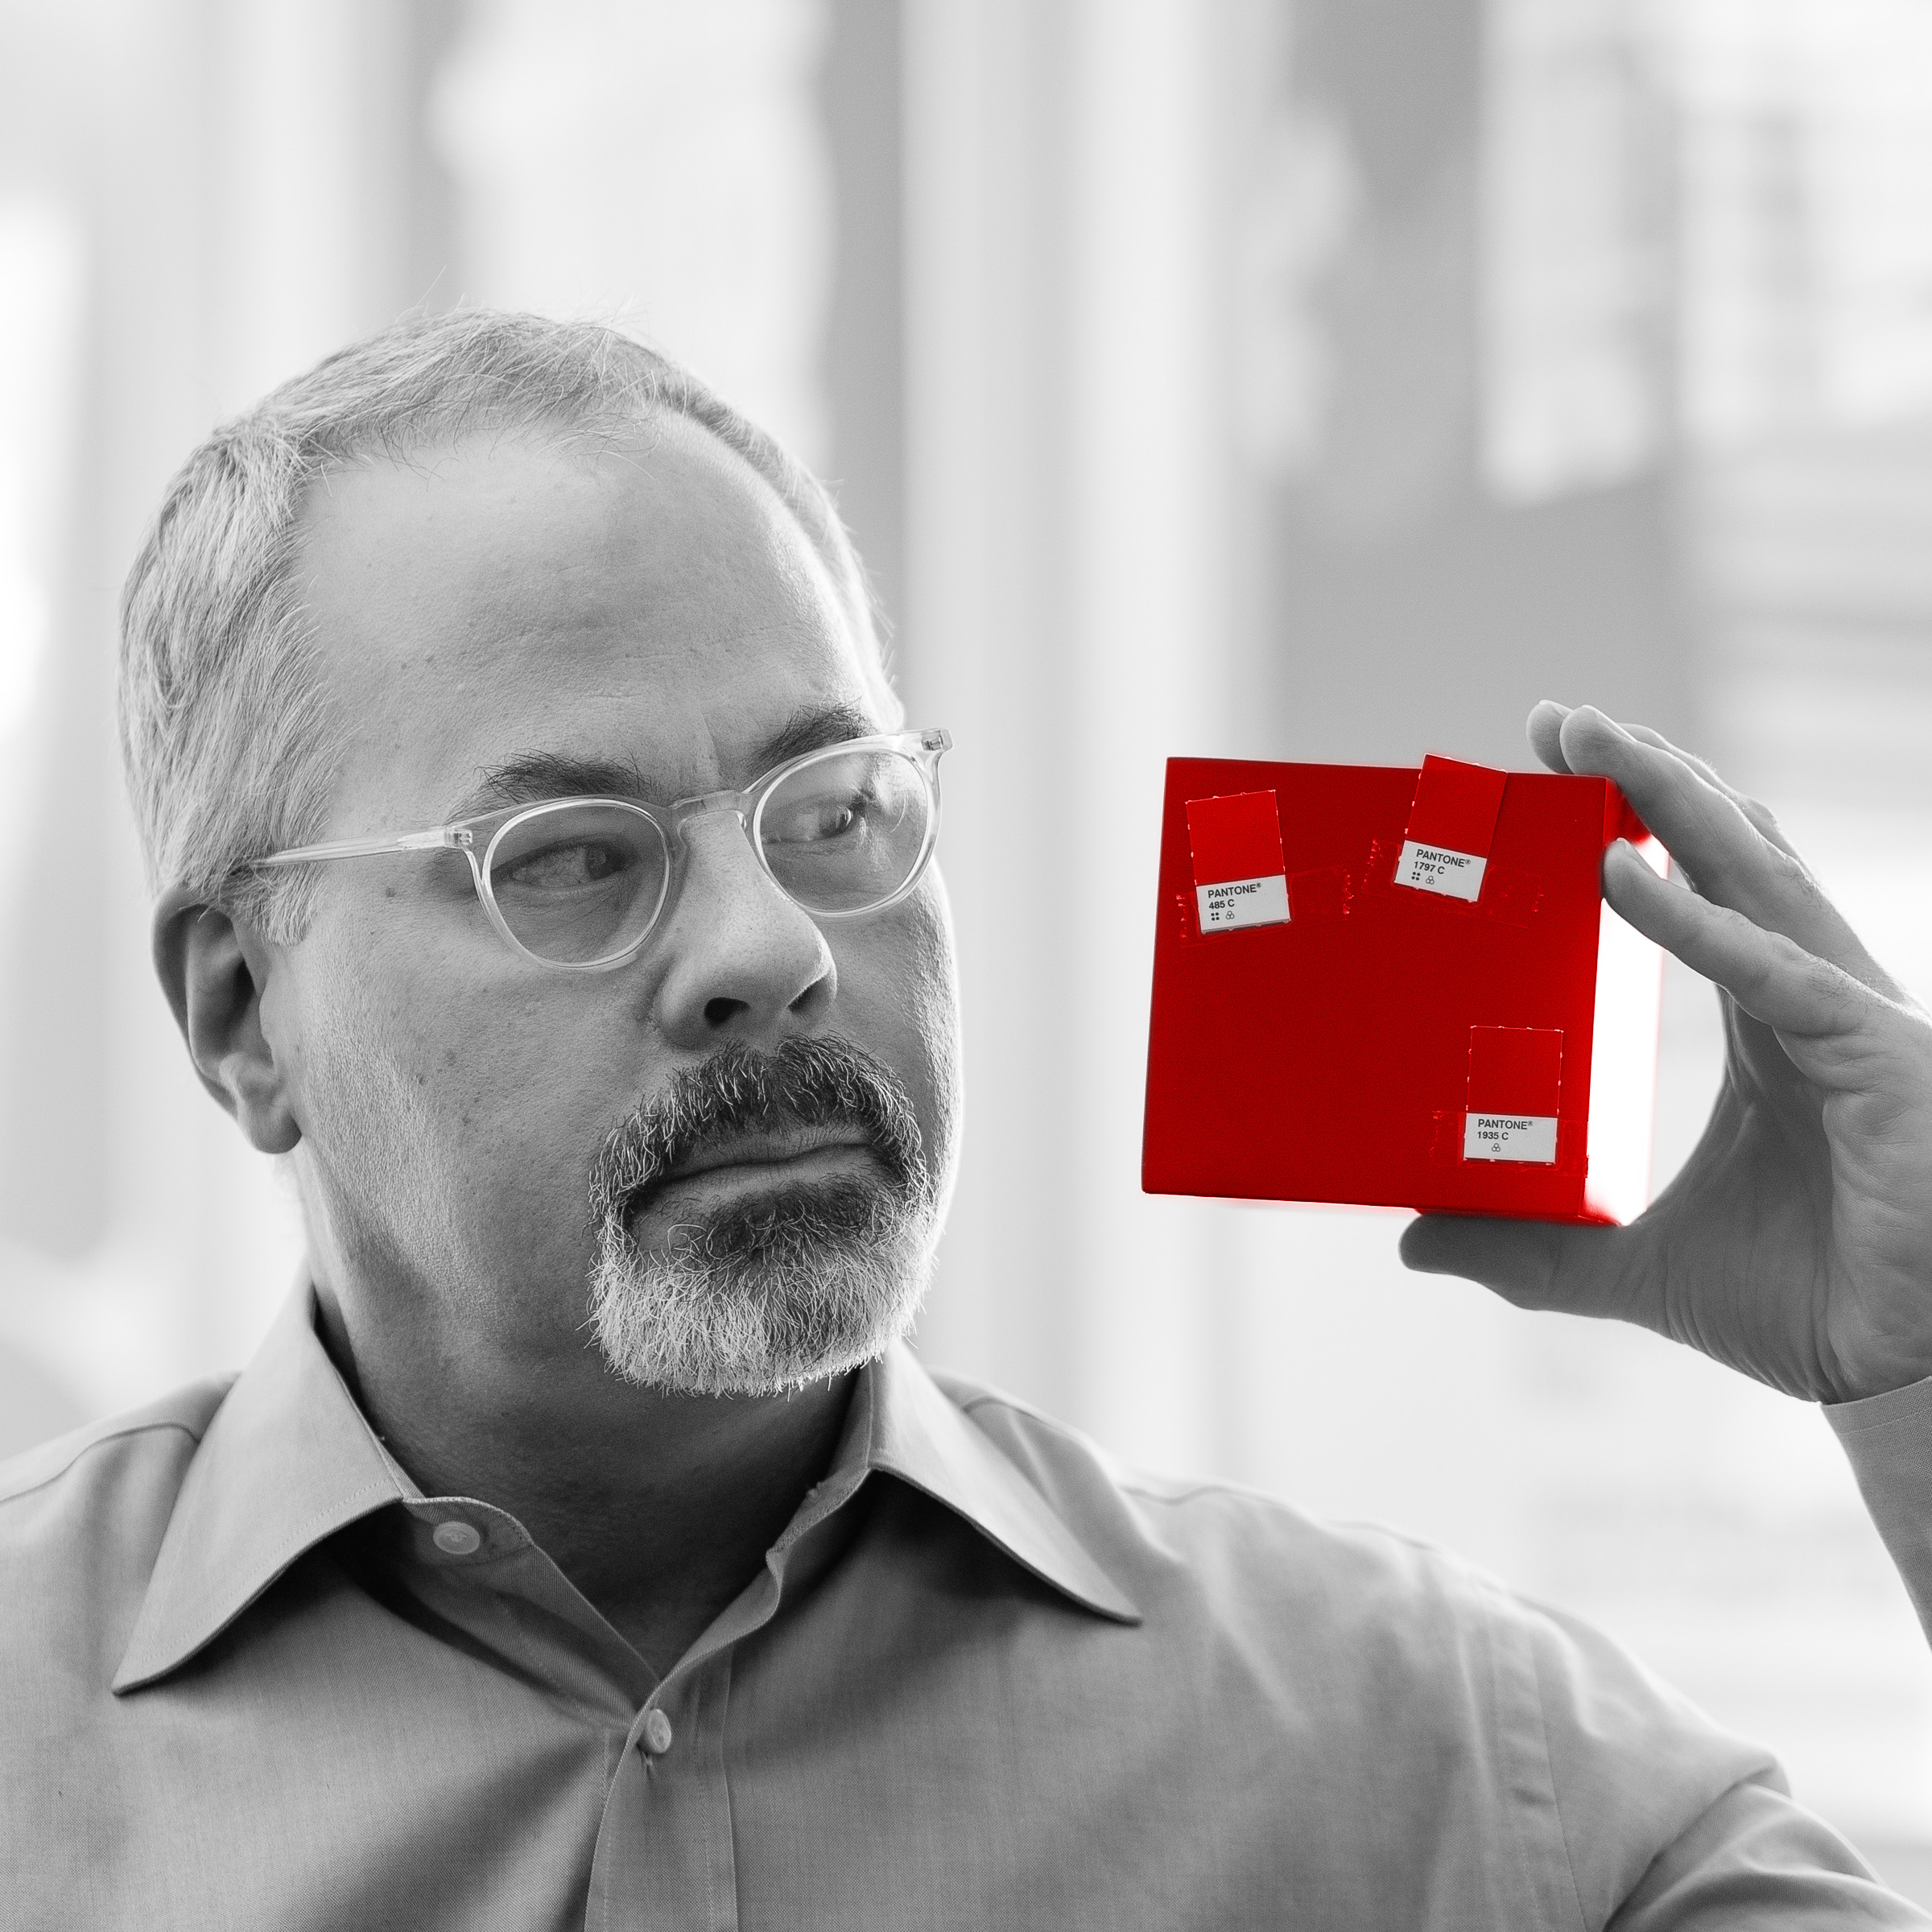 Michael Eads in black and white holding a bright red cube with Pantone swatches taped on to it